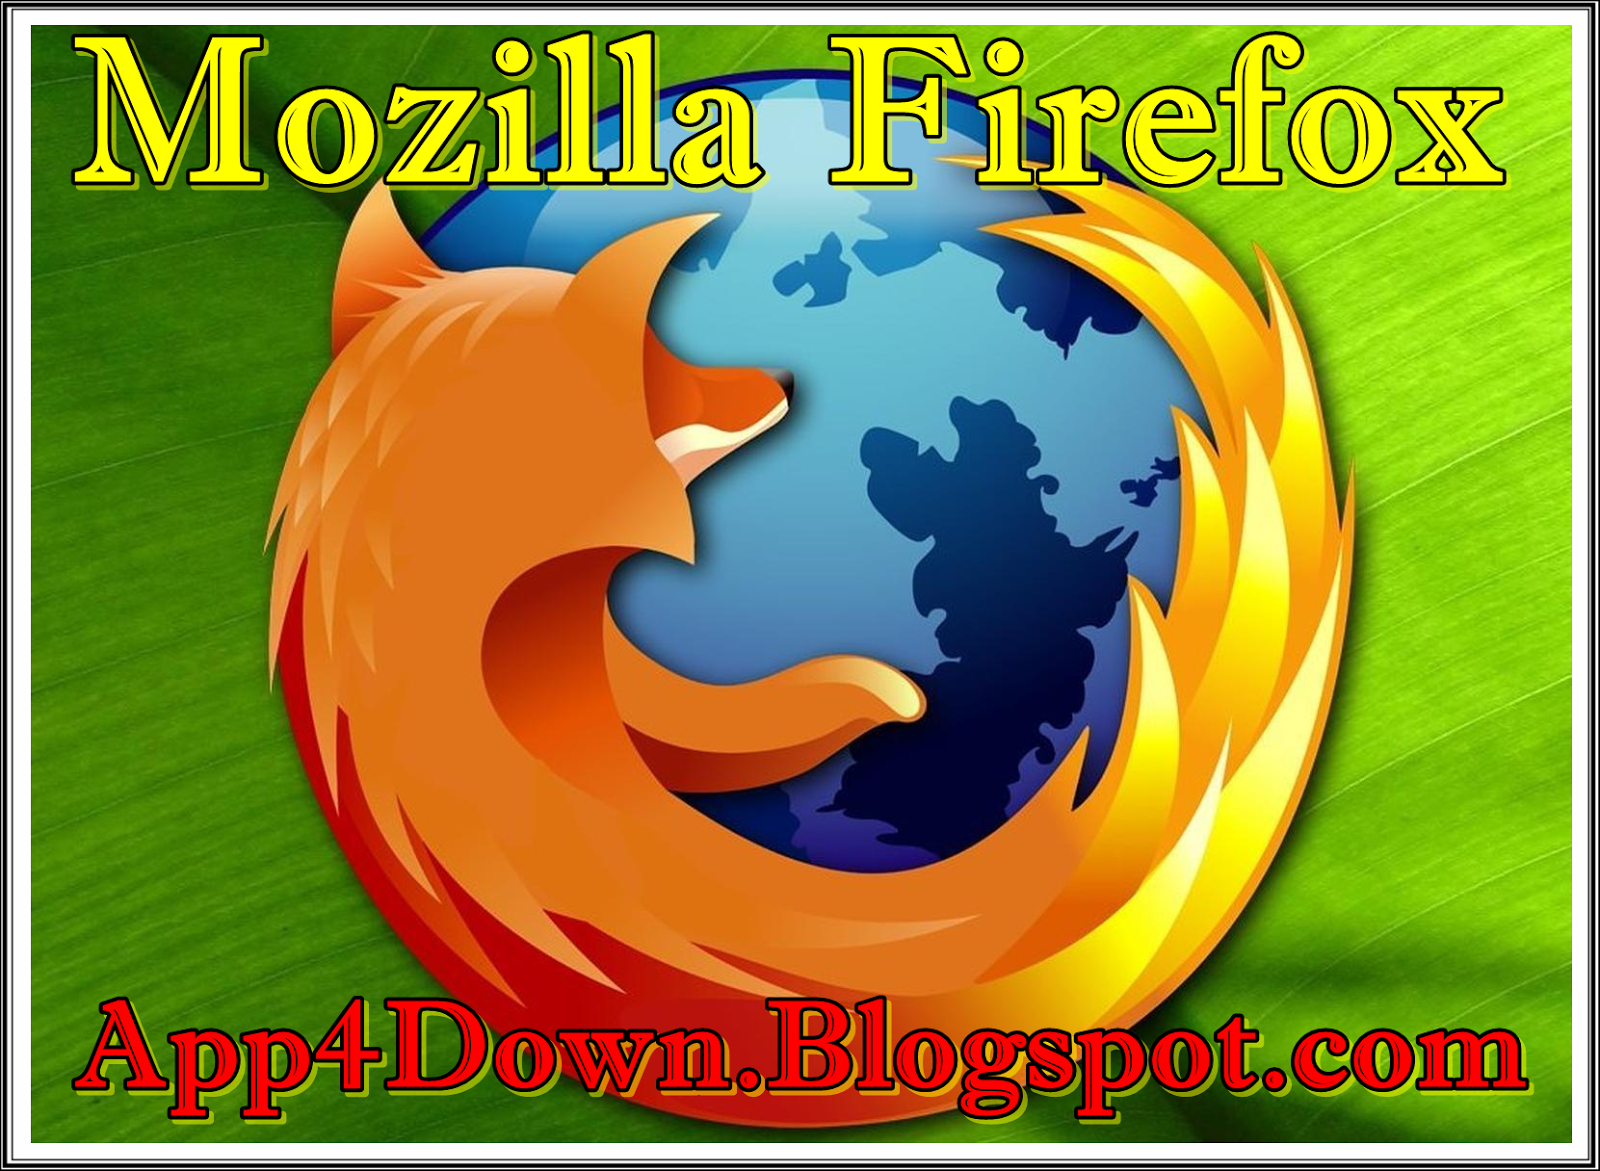 Mozilla Firefox is a fast, full-featured web browser that's easy to use. It has lots of great features including popup-blocking, tabbed-browsing, integrated search, improved privacy features, automatic updating and more.